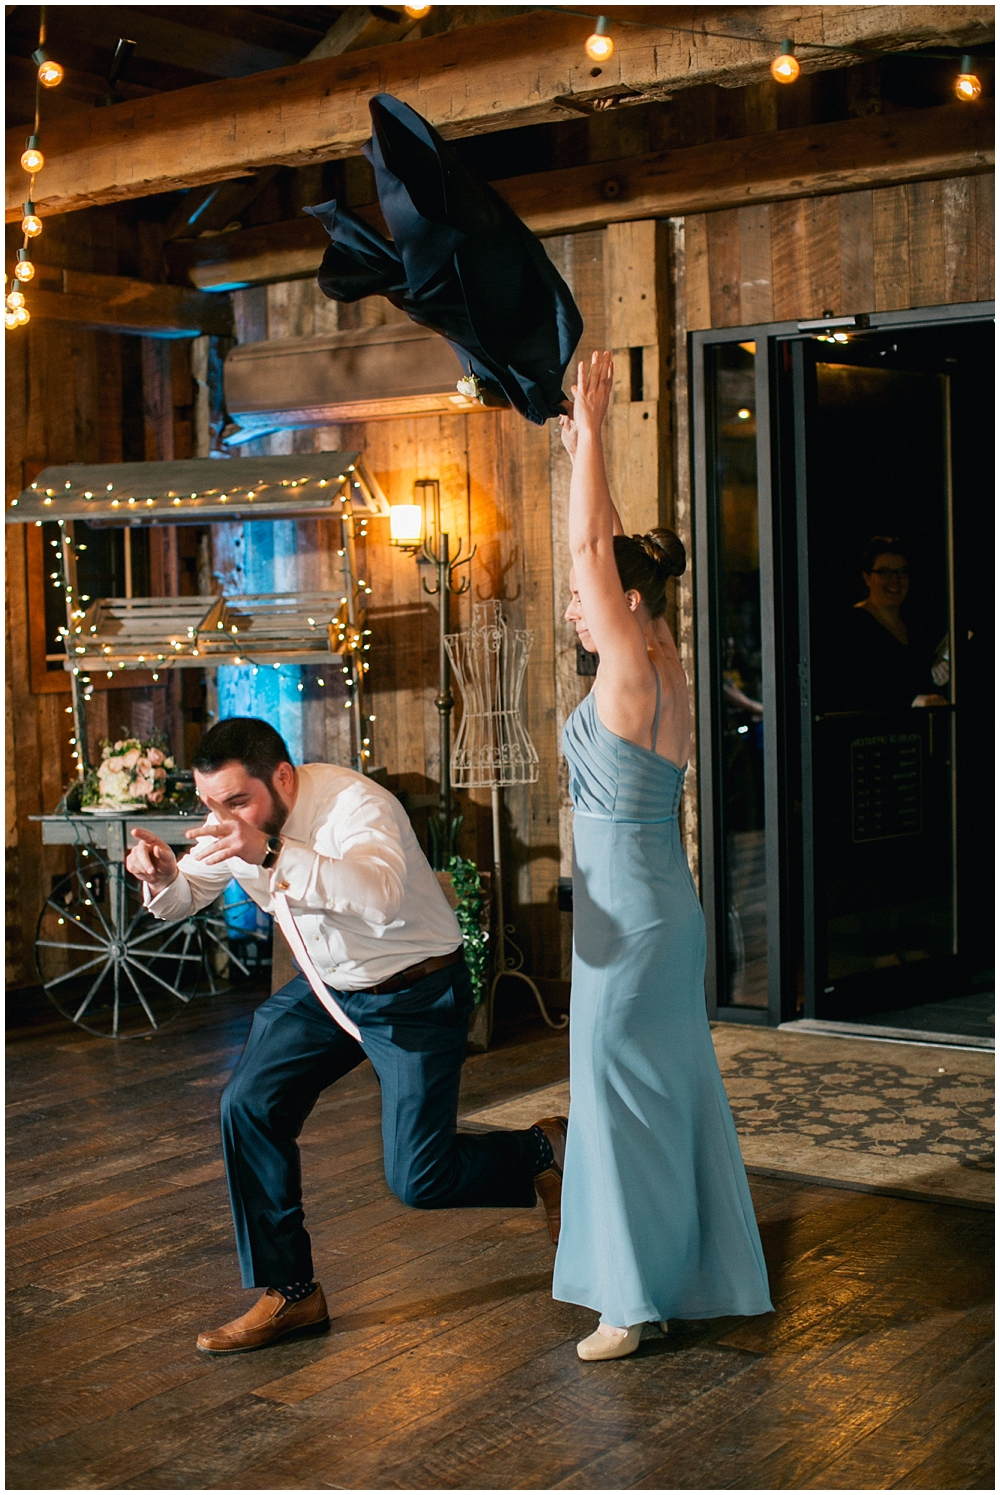 PattengalePhotography_StLouis_Wedding_Photographer_Boho_Hipster_Urban_Style_StCharles_Missouri_BullRunWinery_Charlottesville_Ashley&Sawyer_0136.jpg